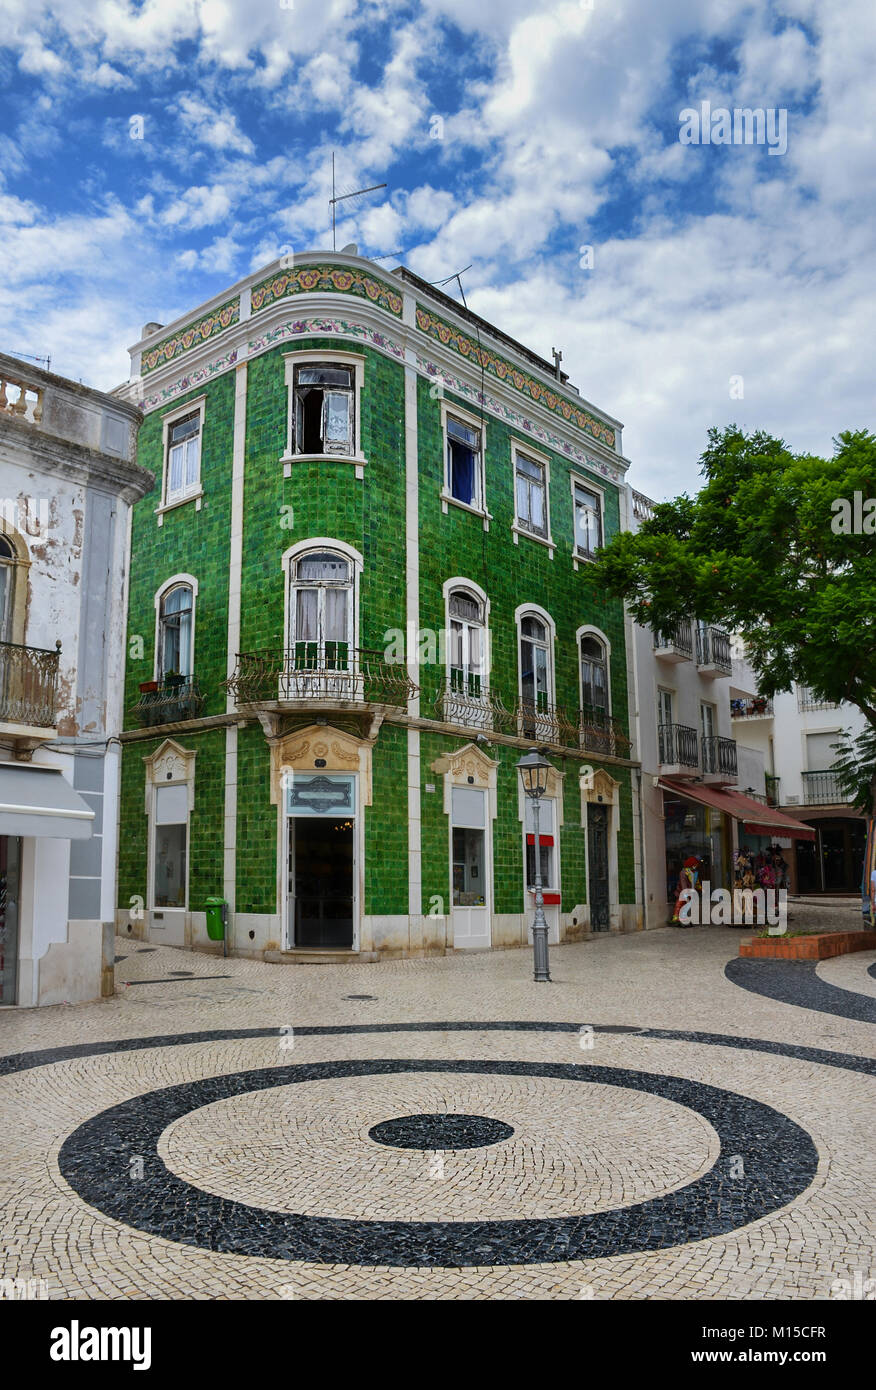 City of Lagos,in Western Algarve Portugal, offers visitors glorious beaches, buzzing nightlife and a charming historic - Stock Image